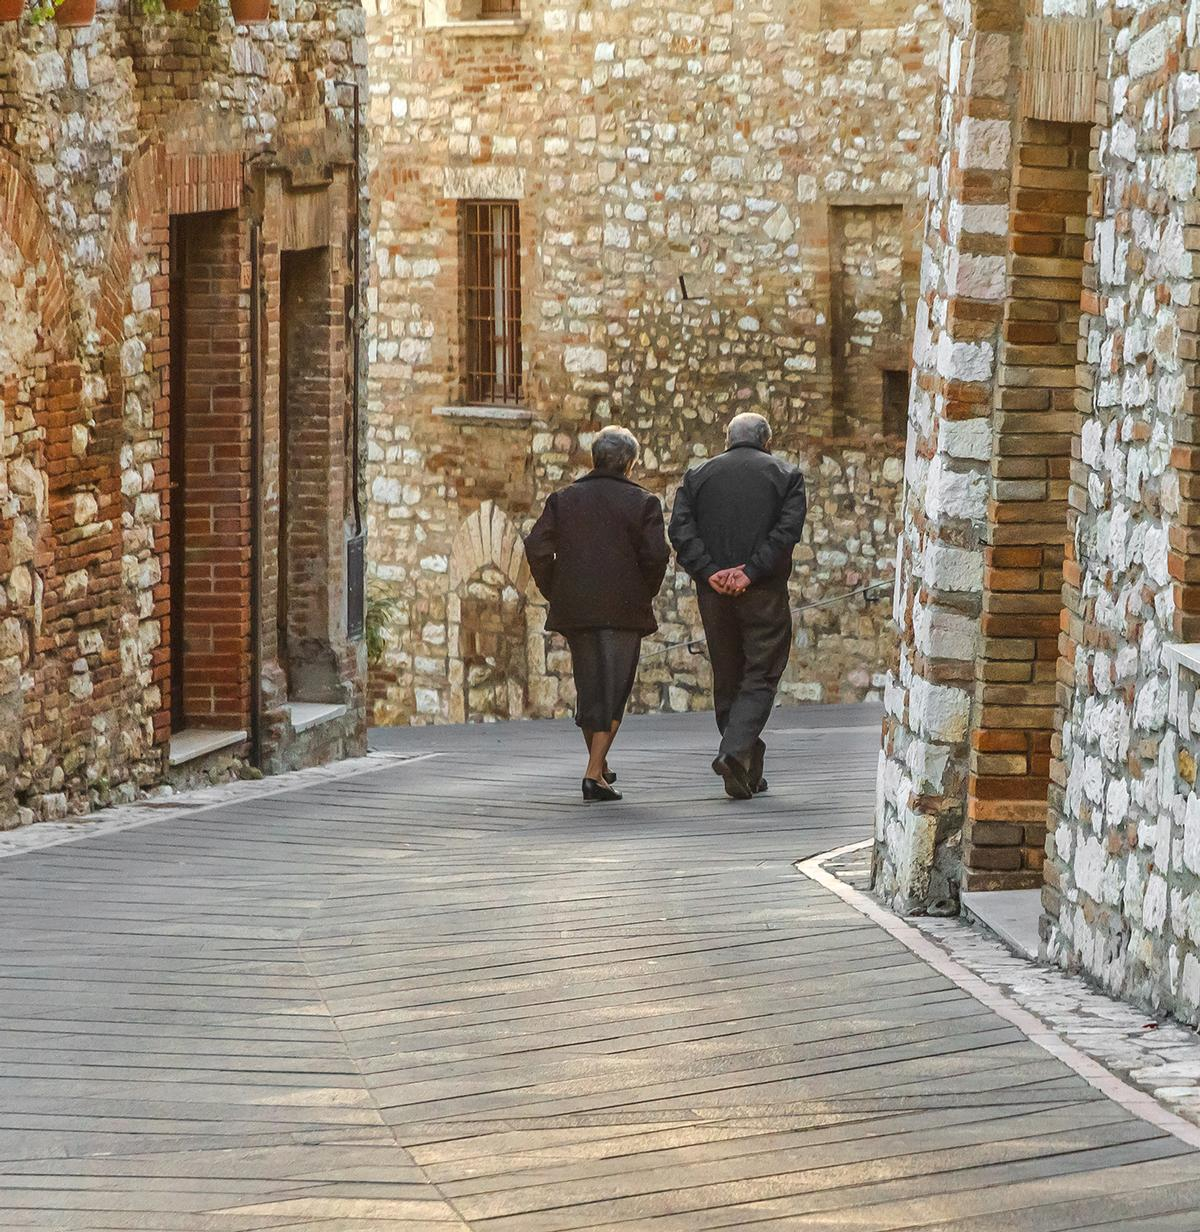 Researchers are studying a group of 300 people, all over 100 years old, living in a remote Italian village / Shutterstock/Orietta Gaspari